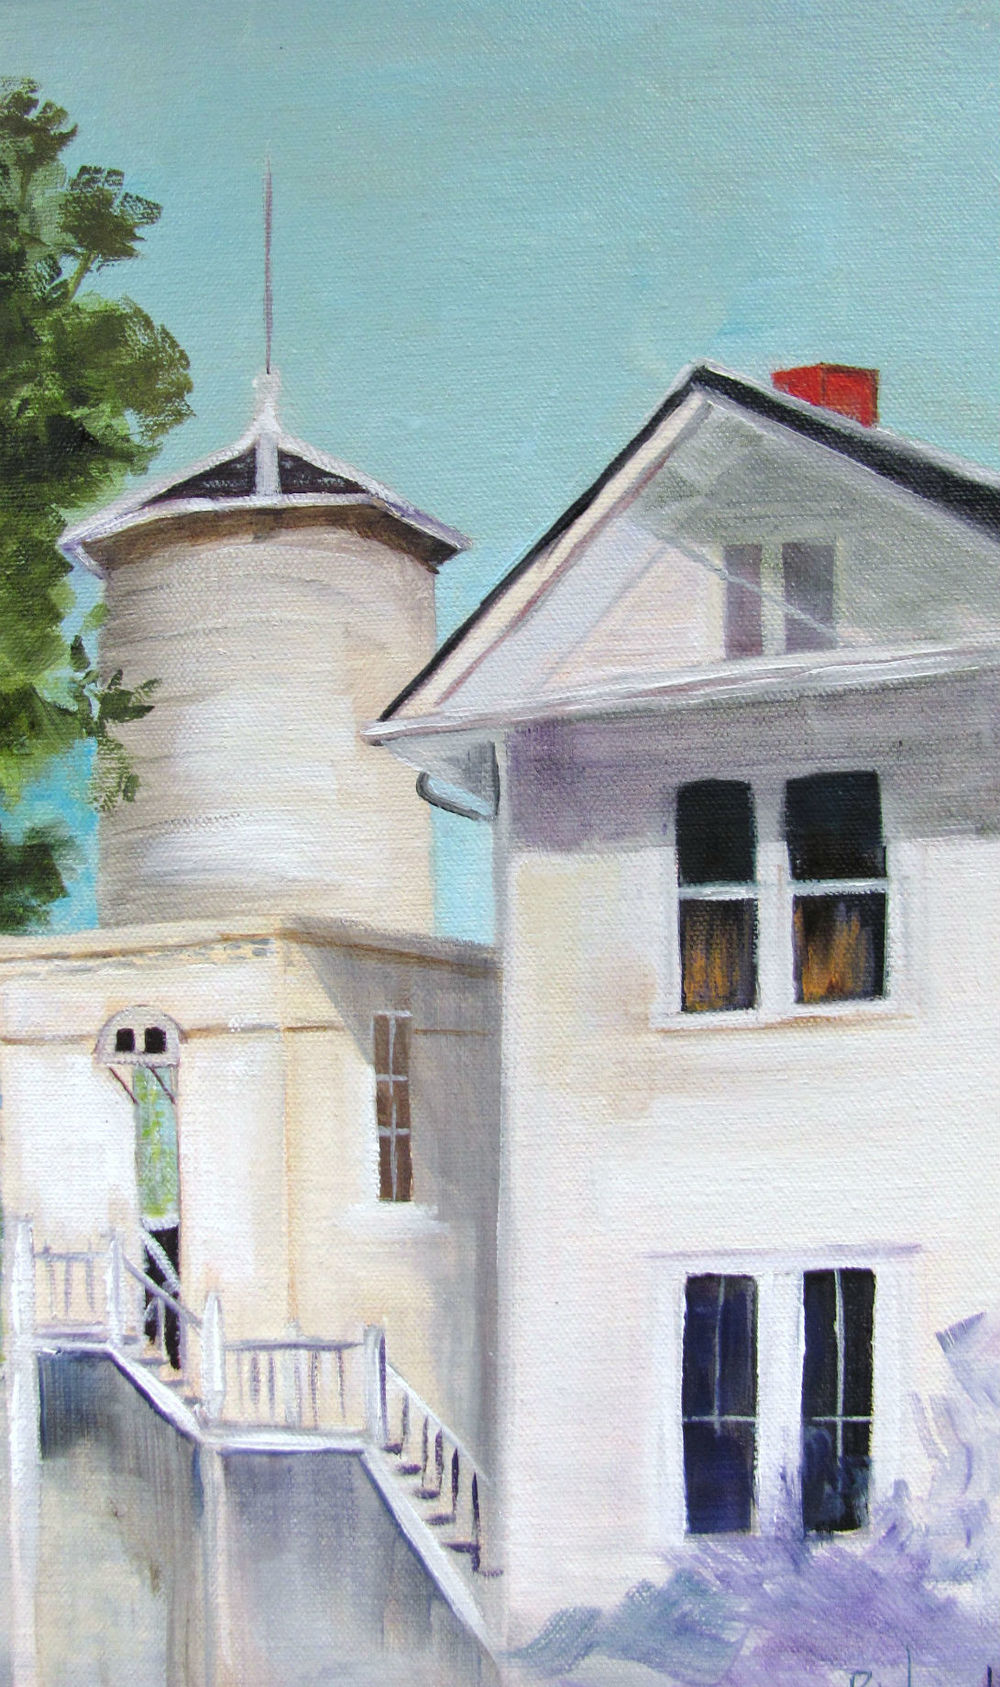 Watercolor artists in texas - How Do You Know When Your Art Is Complete Or Finished